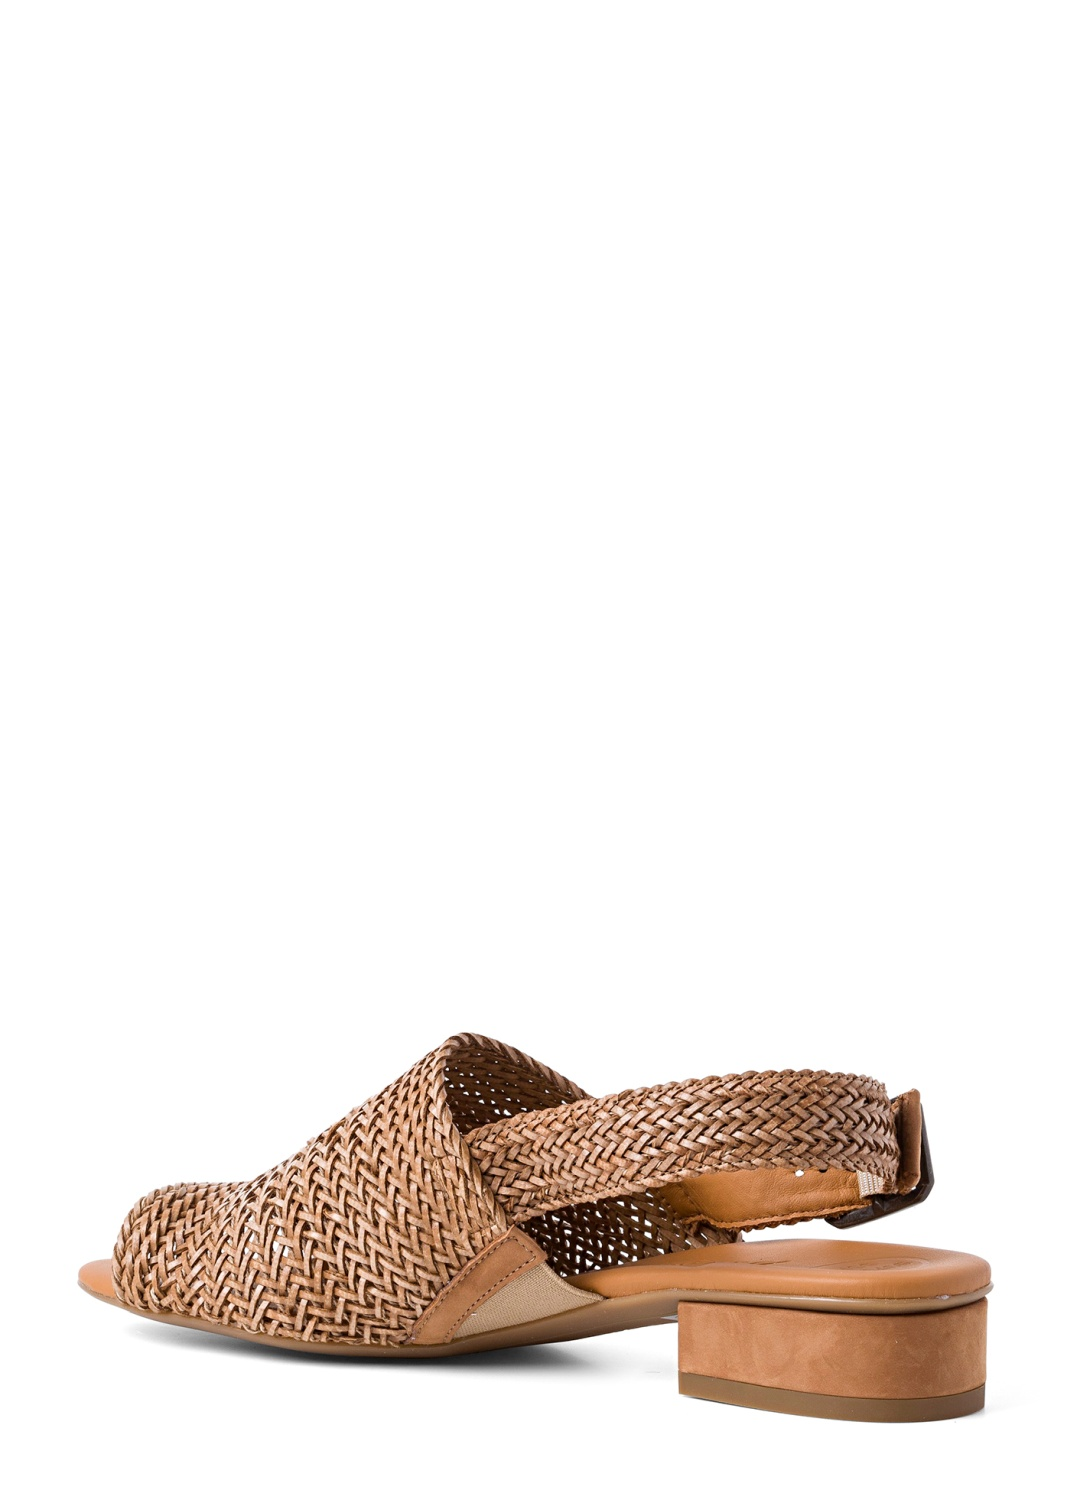 21_Woven Leather Sandal 20mm image number 2